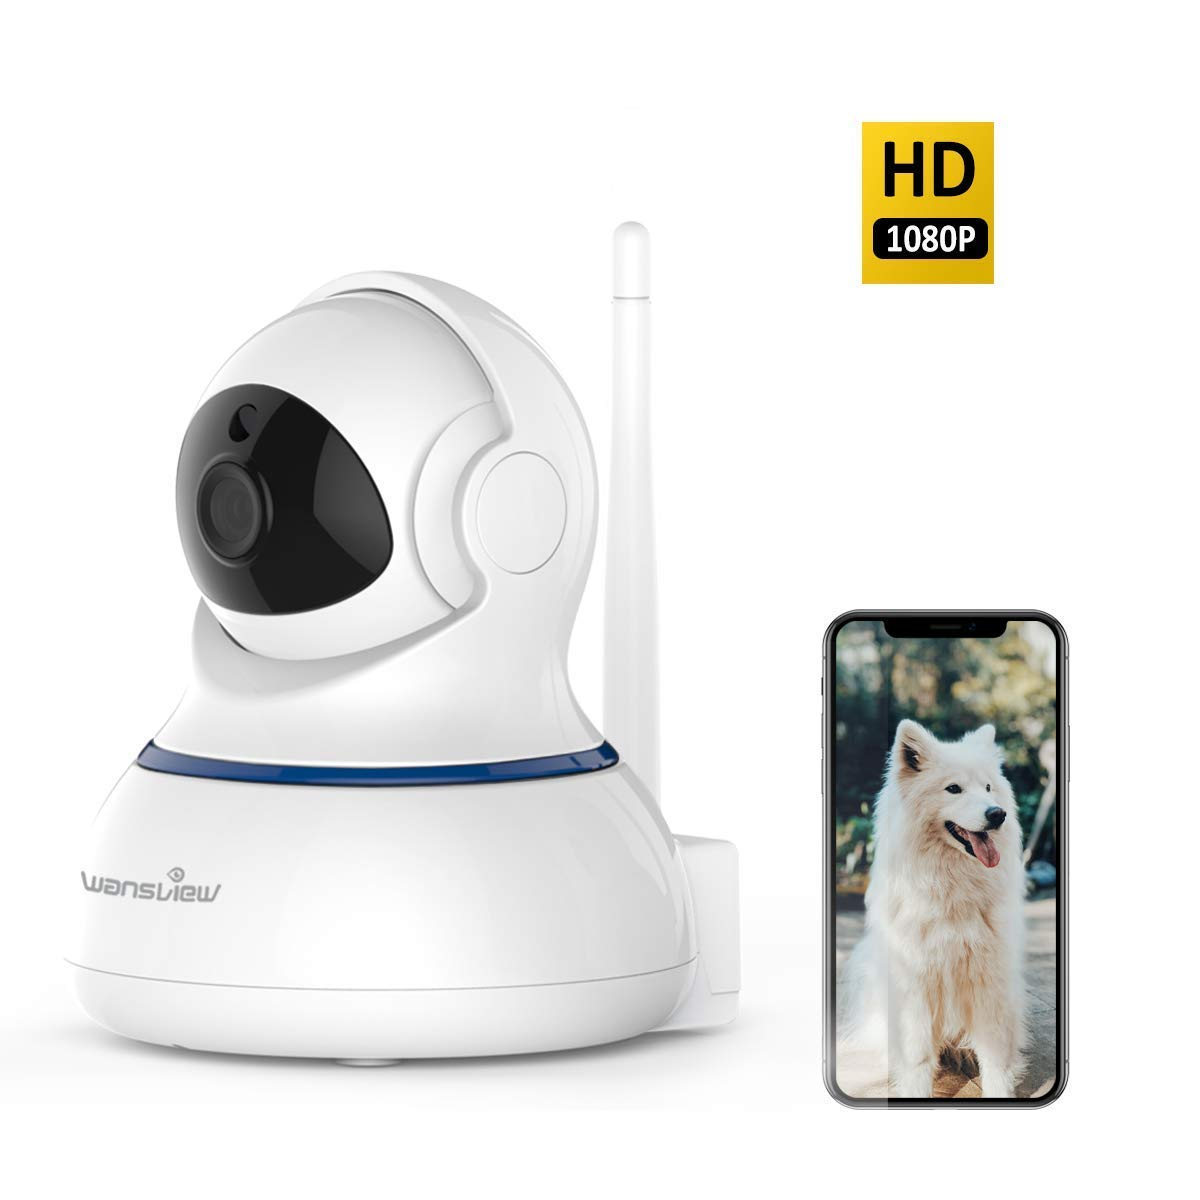 Wansview Wireless 1080P Security Camera, WiFi Home Surveillance IP Camera for Baby/Elder/Pet/Nanny Monitor, Pan/Tilt, Two-Way Audio & Night Vision SD Card Slot Q3-S by wansview